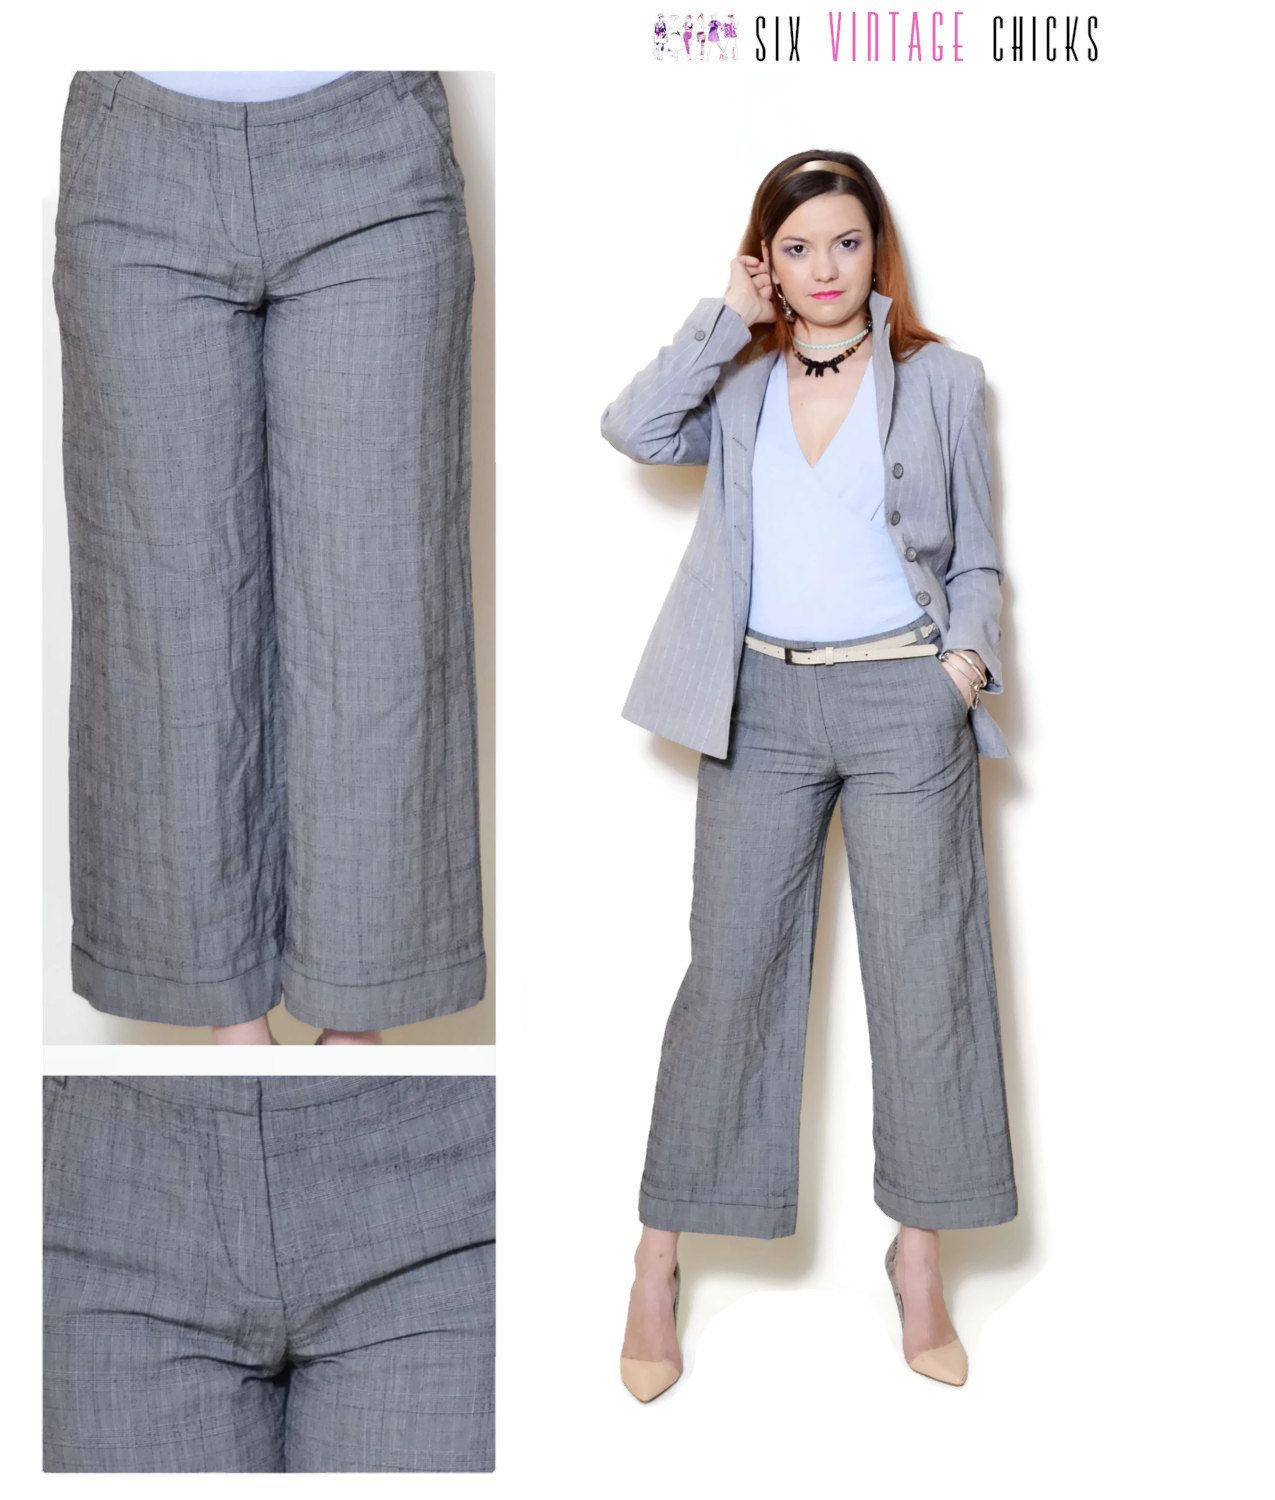 9dd4defcb00cb Wool Pants vintage grey straight leg pants wide leg pants 90s clothing  womens clothing boho bohemian office clothes plaid pants gift for her by ...